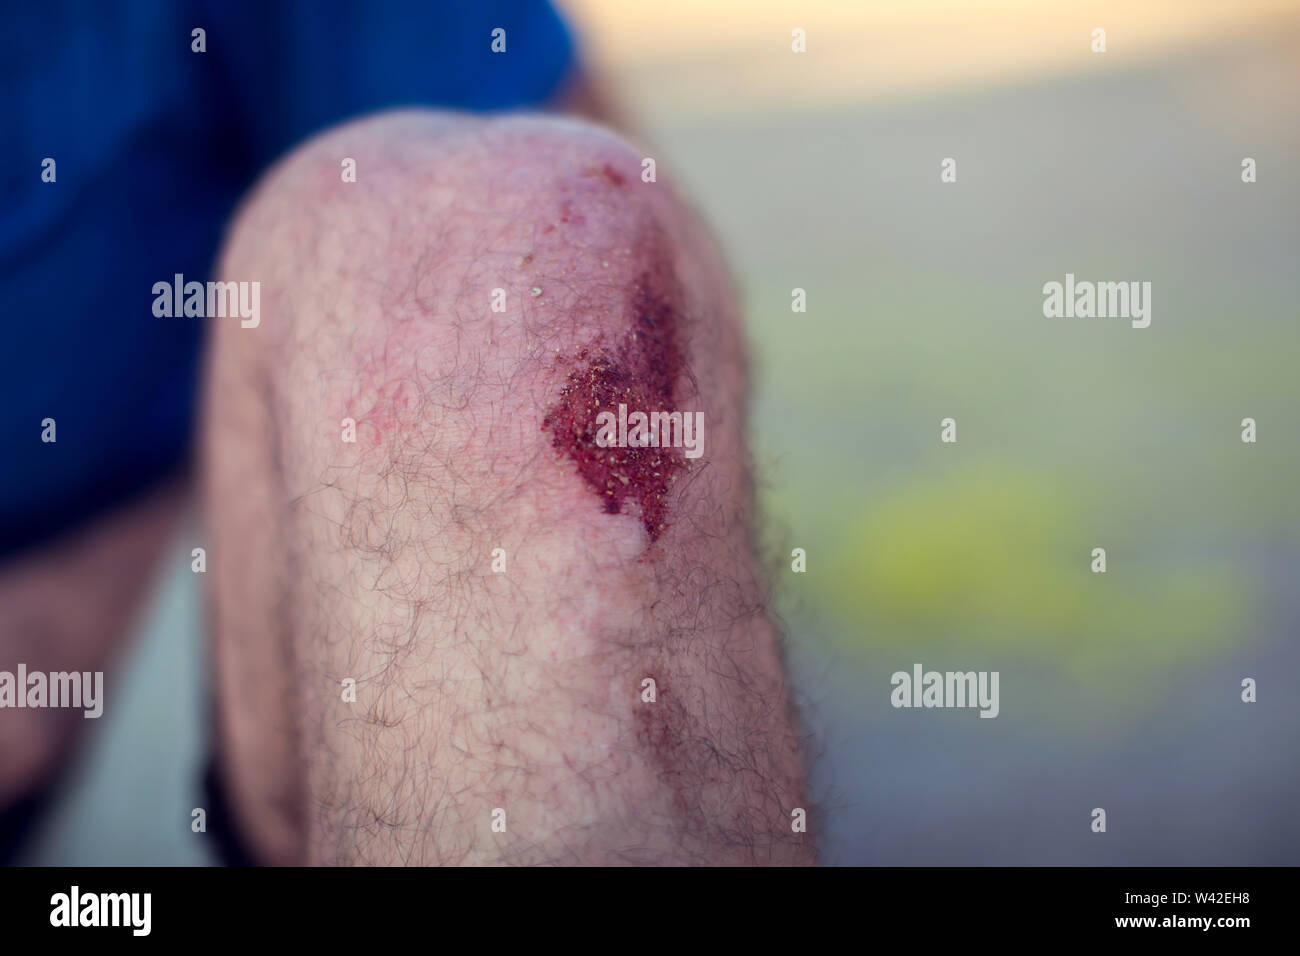 Skin Abrasion Stock Photos & Skin Abrasion Stock Images - Alamy